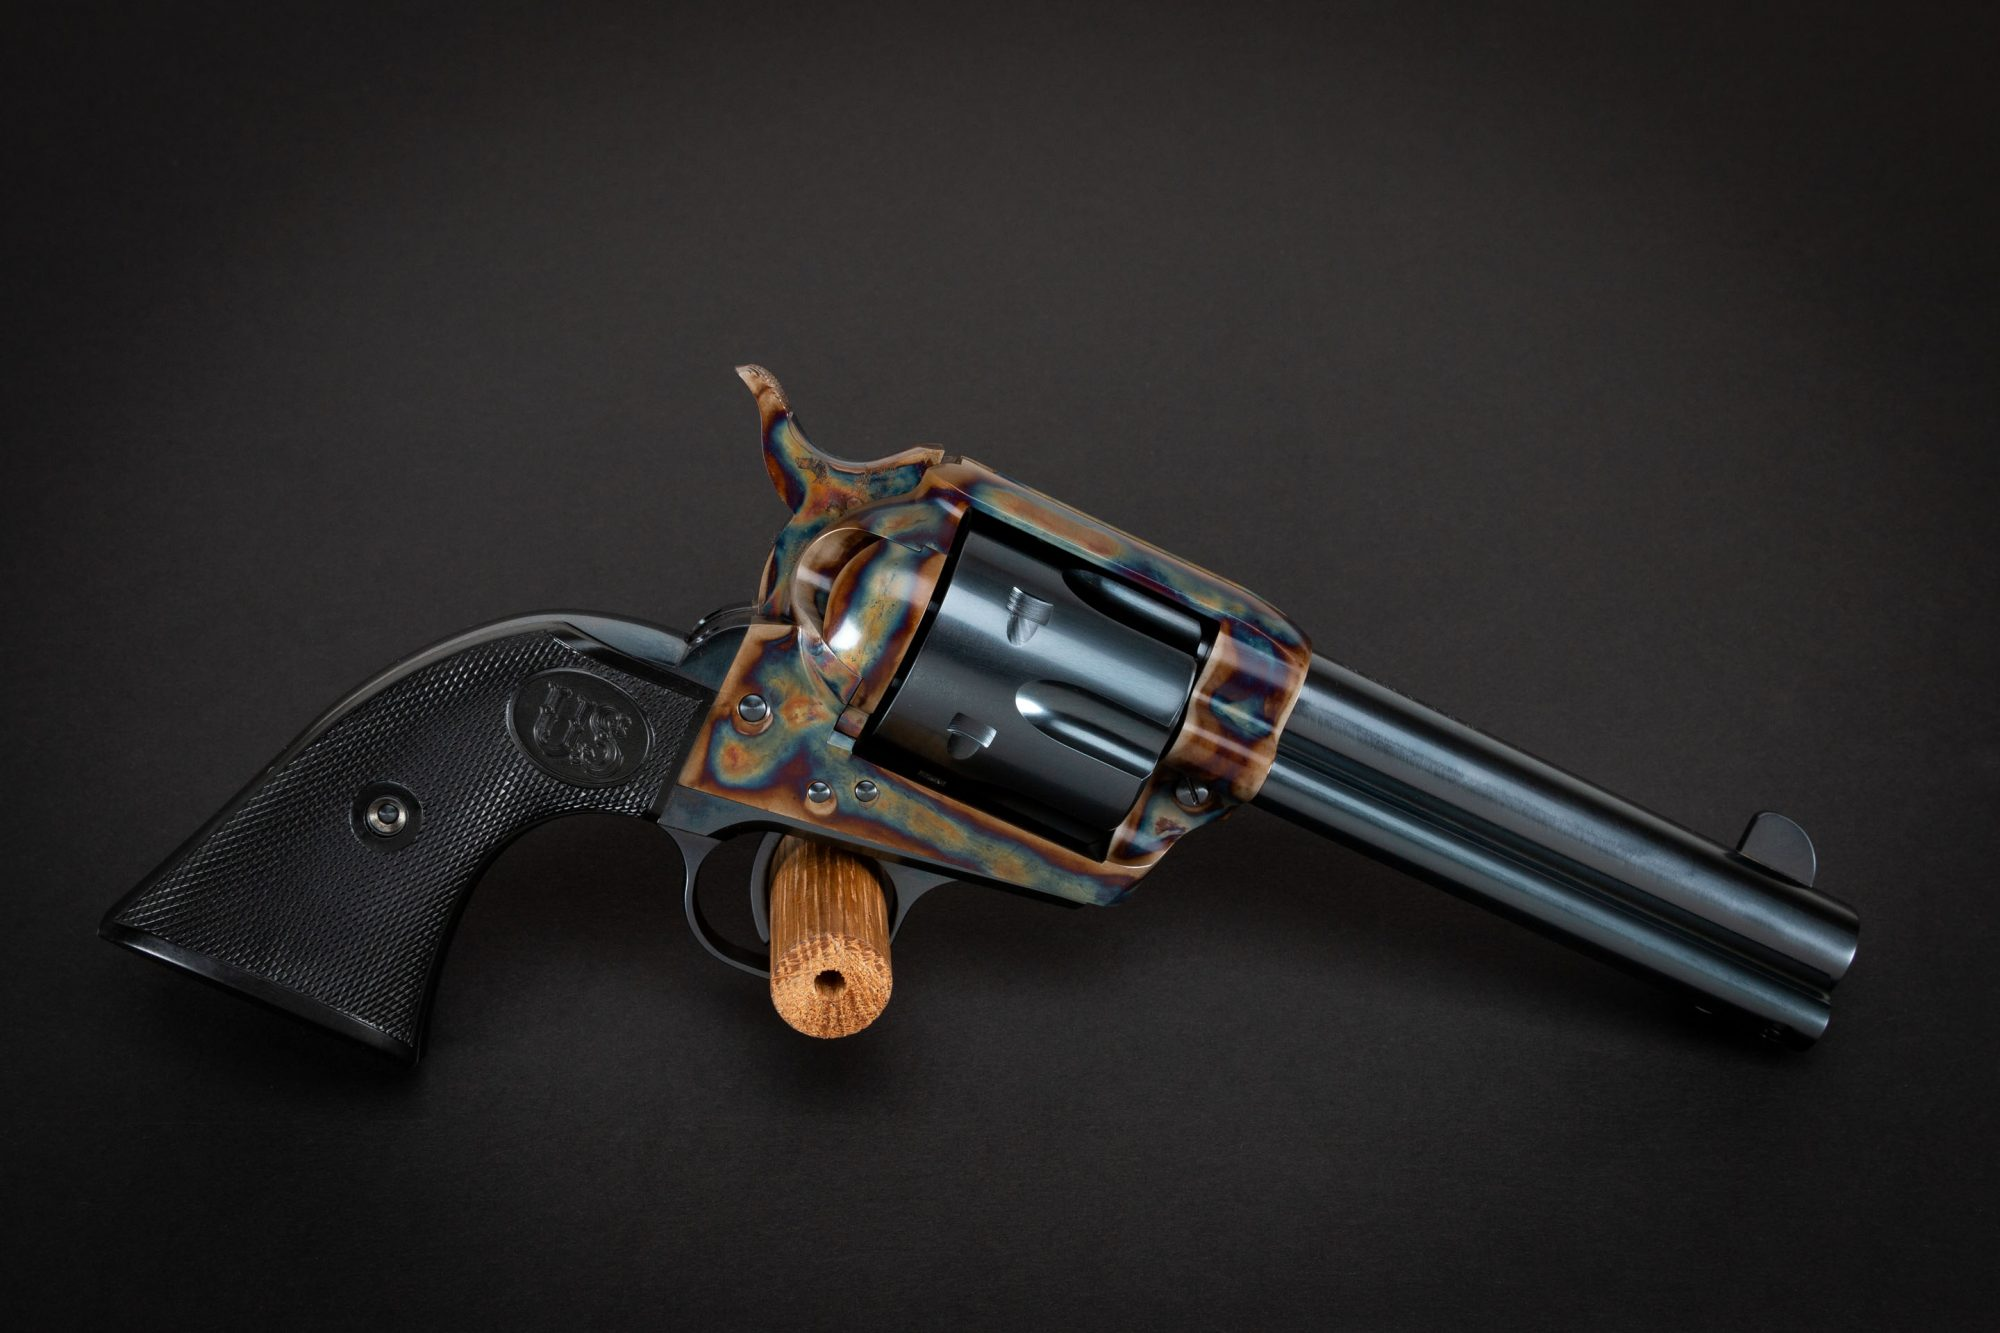 Photo of a color case hardened U.S. Fire Arms SAA revolver, featuring restoration-grade bone charcoal color case hardening by Turnbull Restoration of Bloomfield, NY